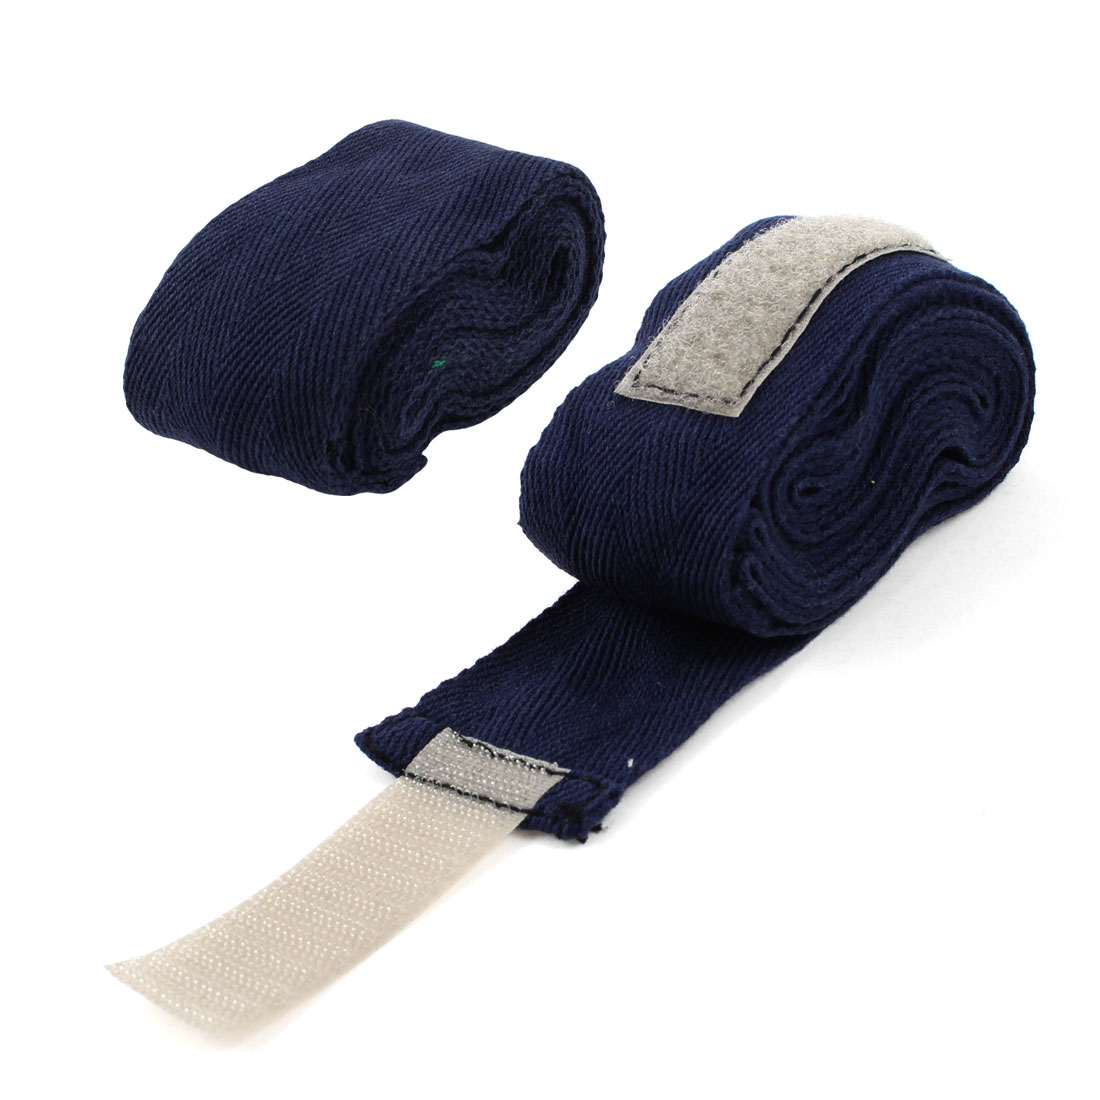 Boxer Boxing Hook Loop Fastener Navy Blue Hand Wraps Bandages 7.5Ft 2 Pcs